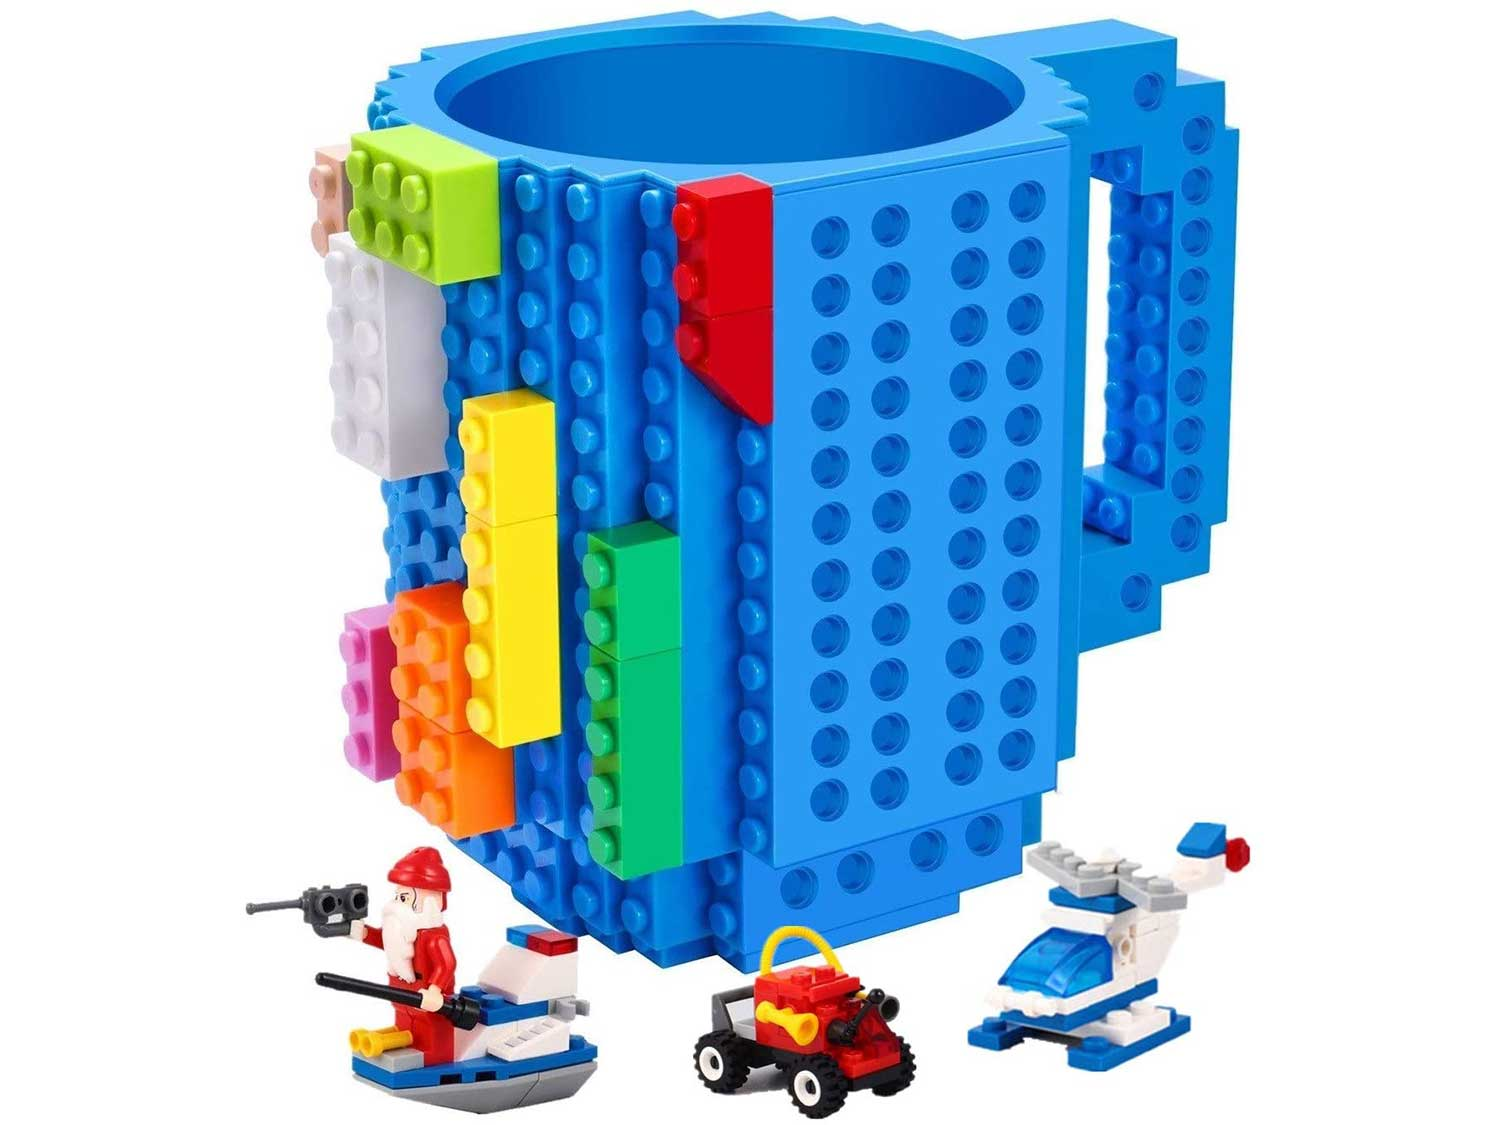 Build-on Brick Mug,with 3 packs of Blocks,Compatible with Lego,Creative DIY Building Blocks Cup for Water Juice,Fun Coffee Mugs Unique Puzzle Cups,Novelty Kids Party Cup for All Festival,by Triumphic